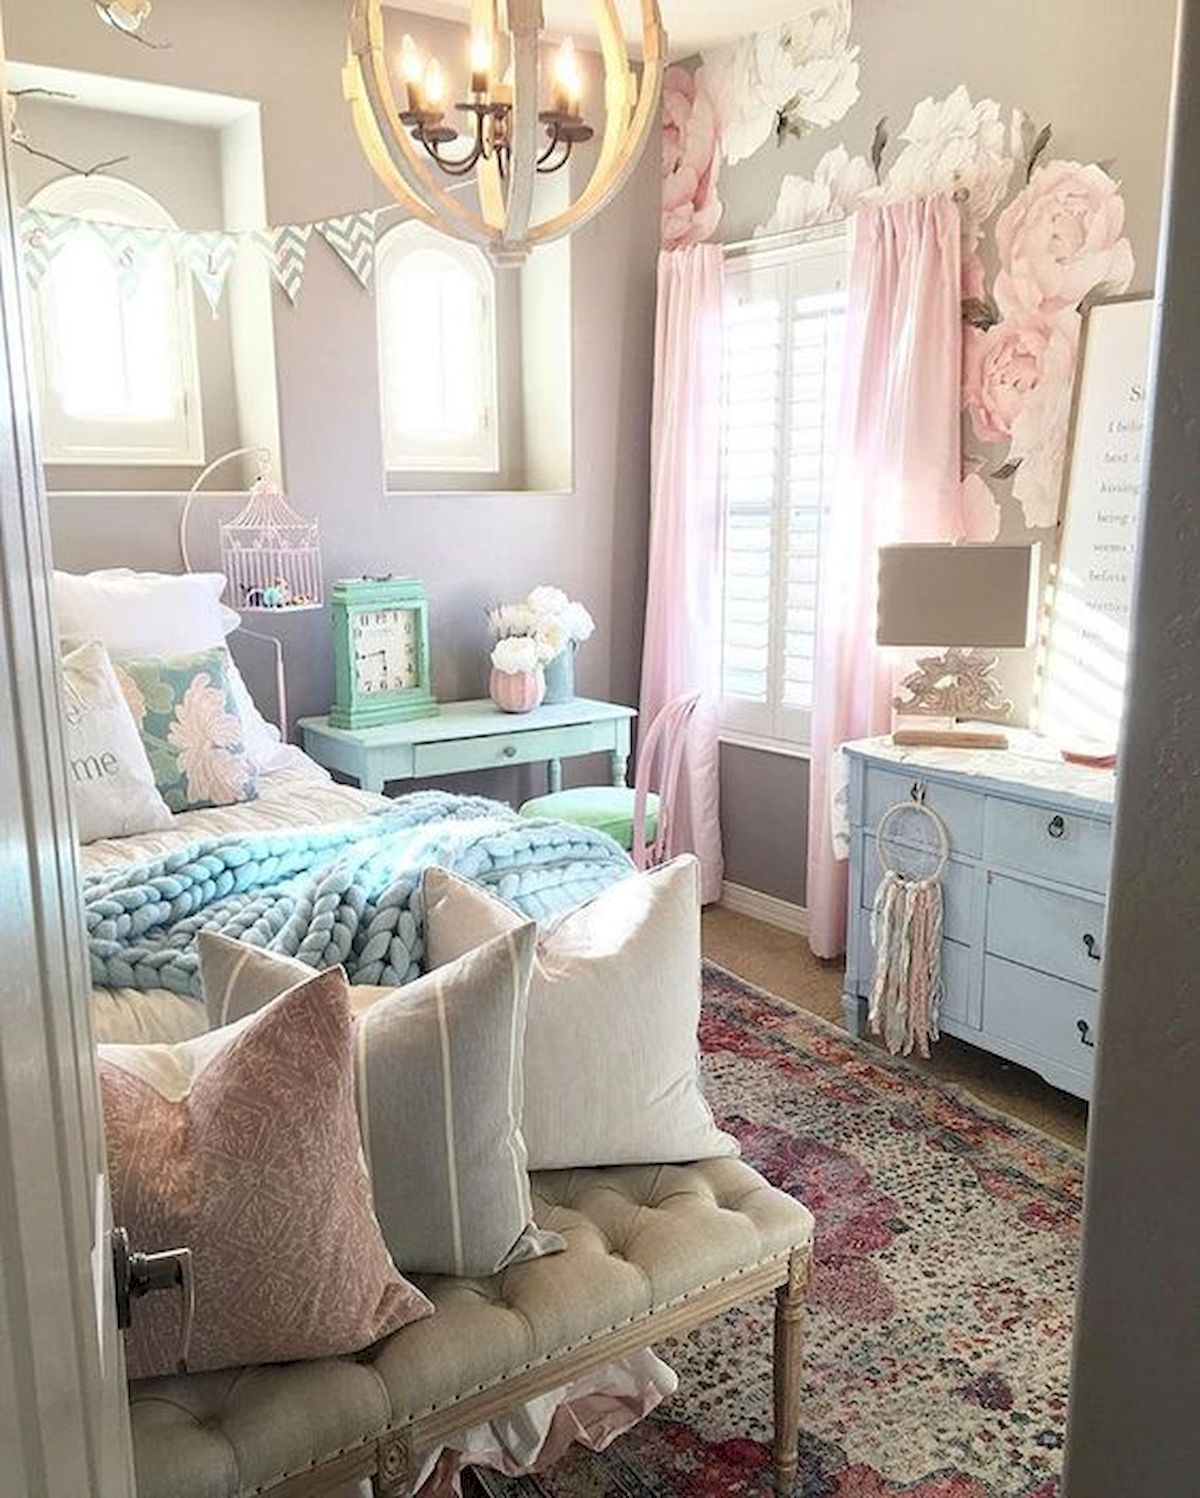 60 Cute DIY Bedroom Design And Decor Ideas For Kids (20)